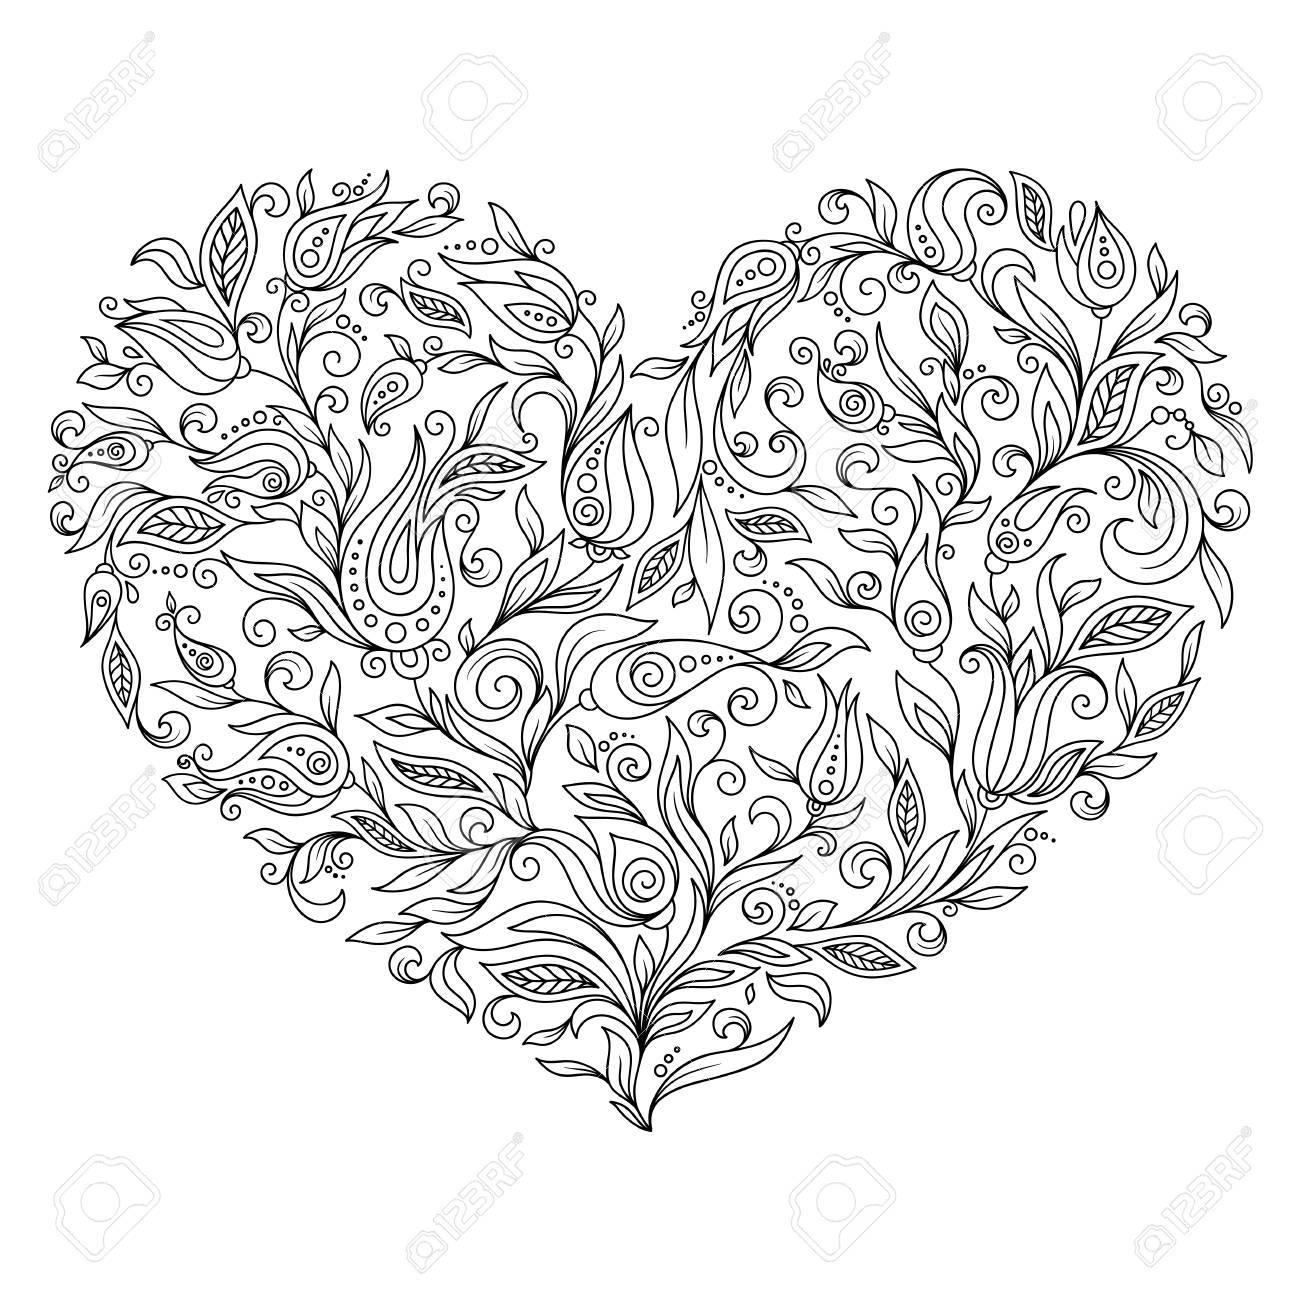 Zentangle Hearts Coloring Page • FREE Printable PDF from PrimaryGames | 1300x1300